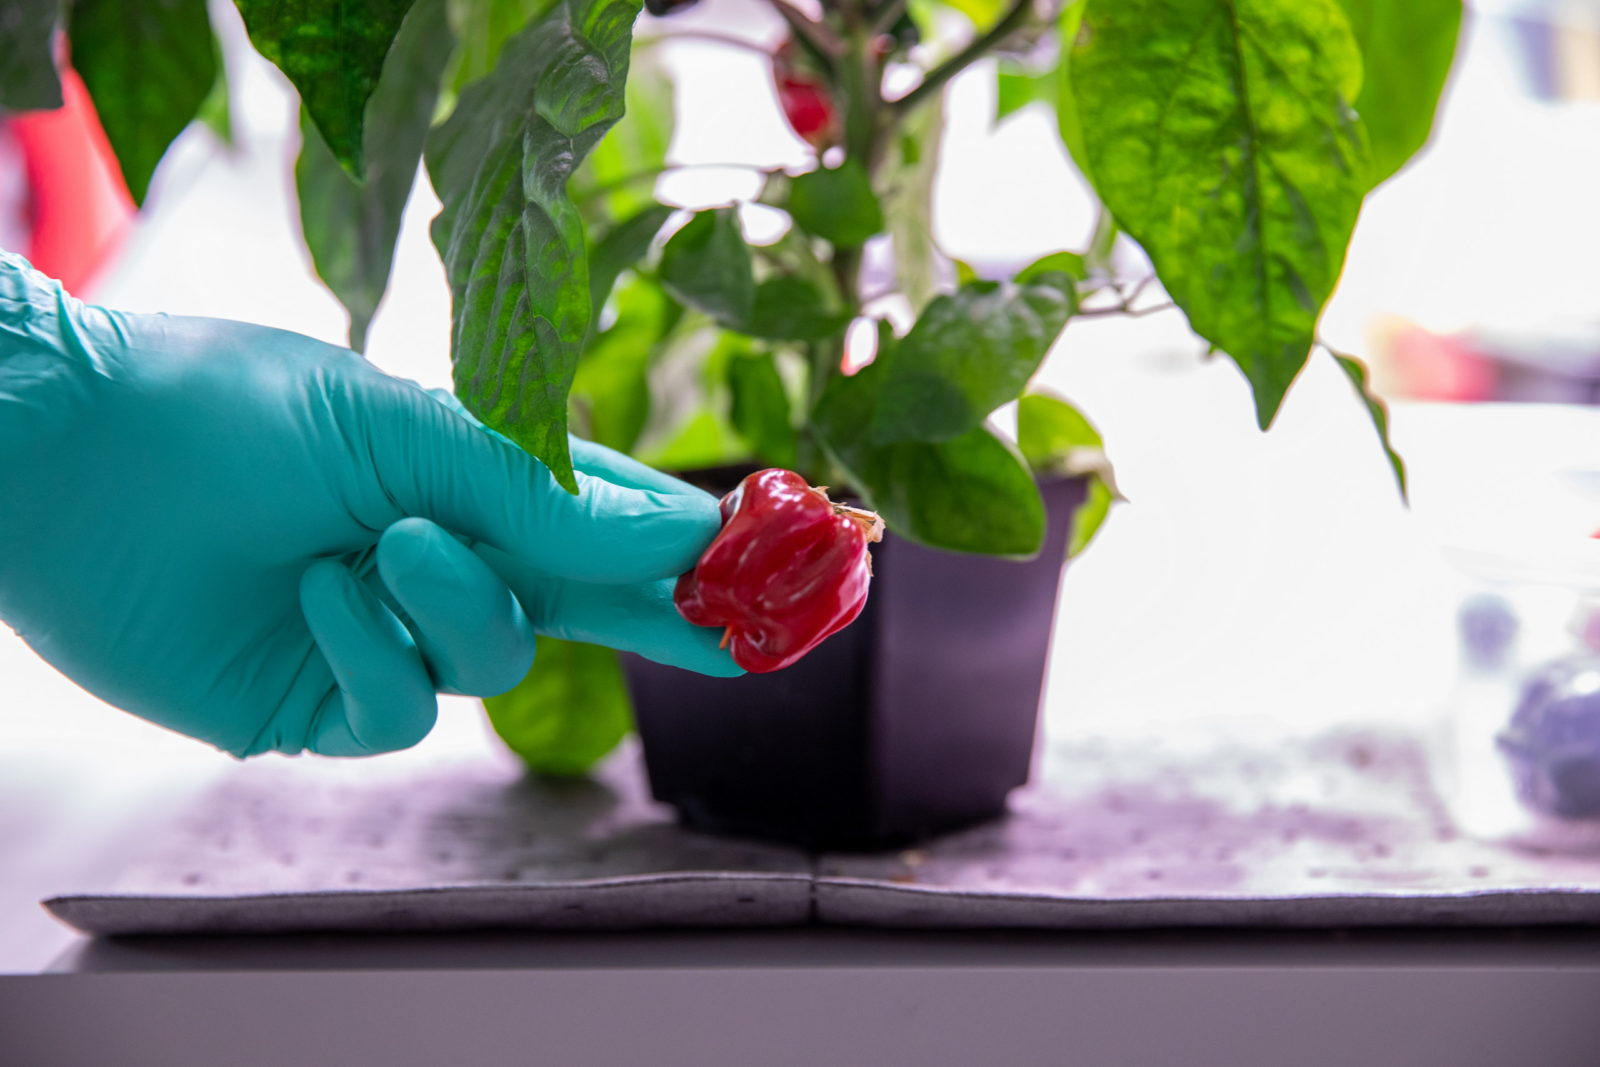 nasa-astronauts-are-growing-chili-peppers-in-space-now